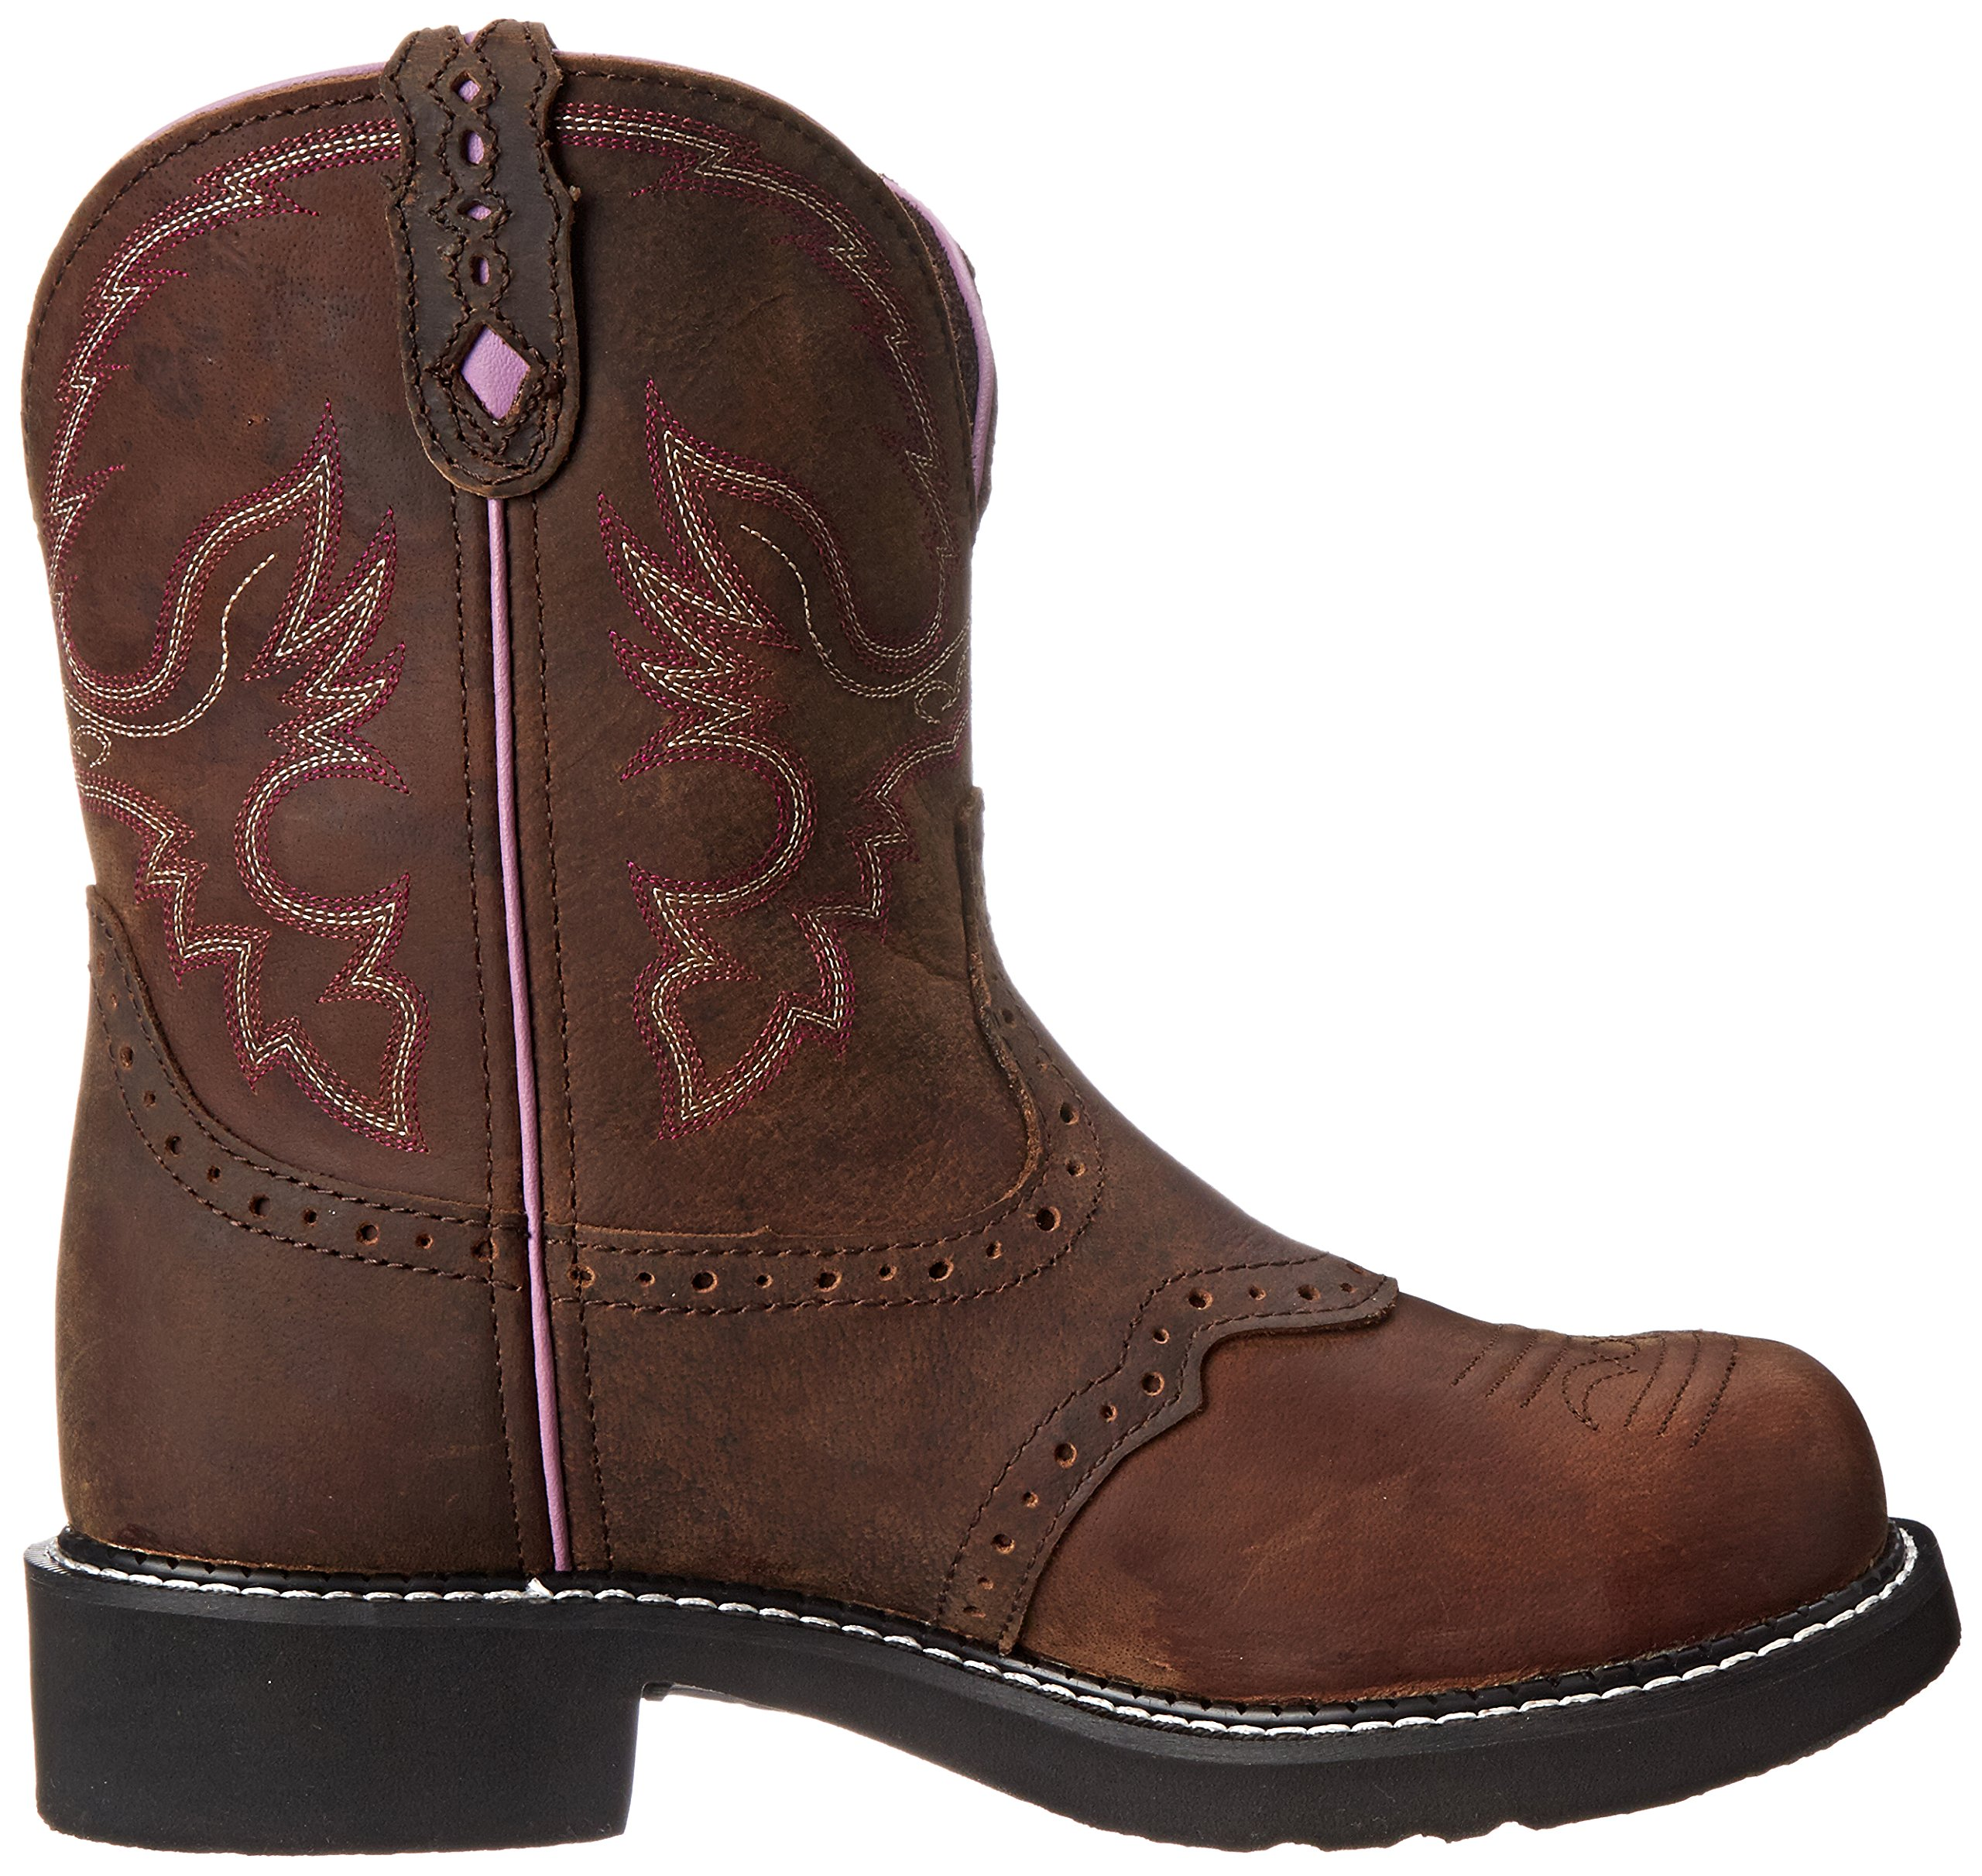 Justin Boots Women's Gypsy Collection 8'' Steel Toe,Aged Bark,6B by Justin Boots (Image #7)